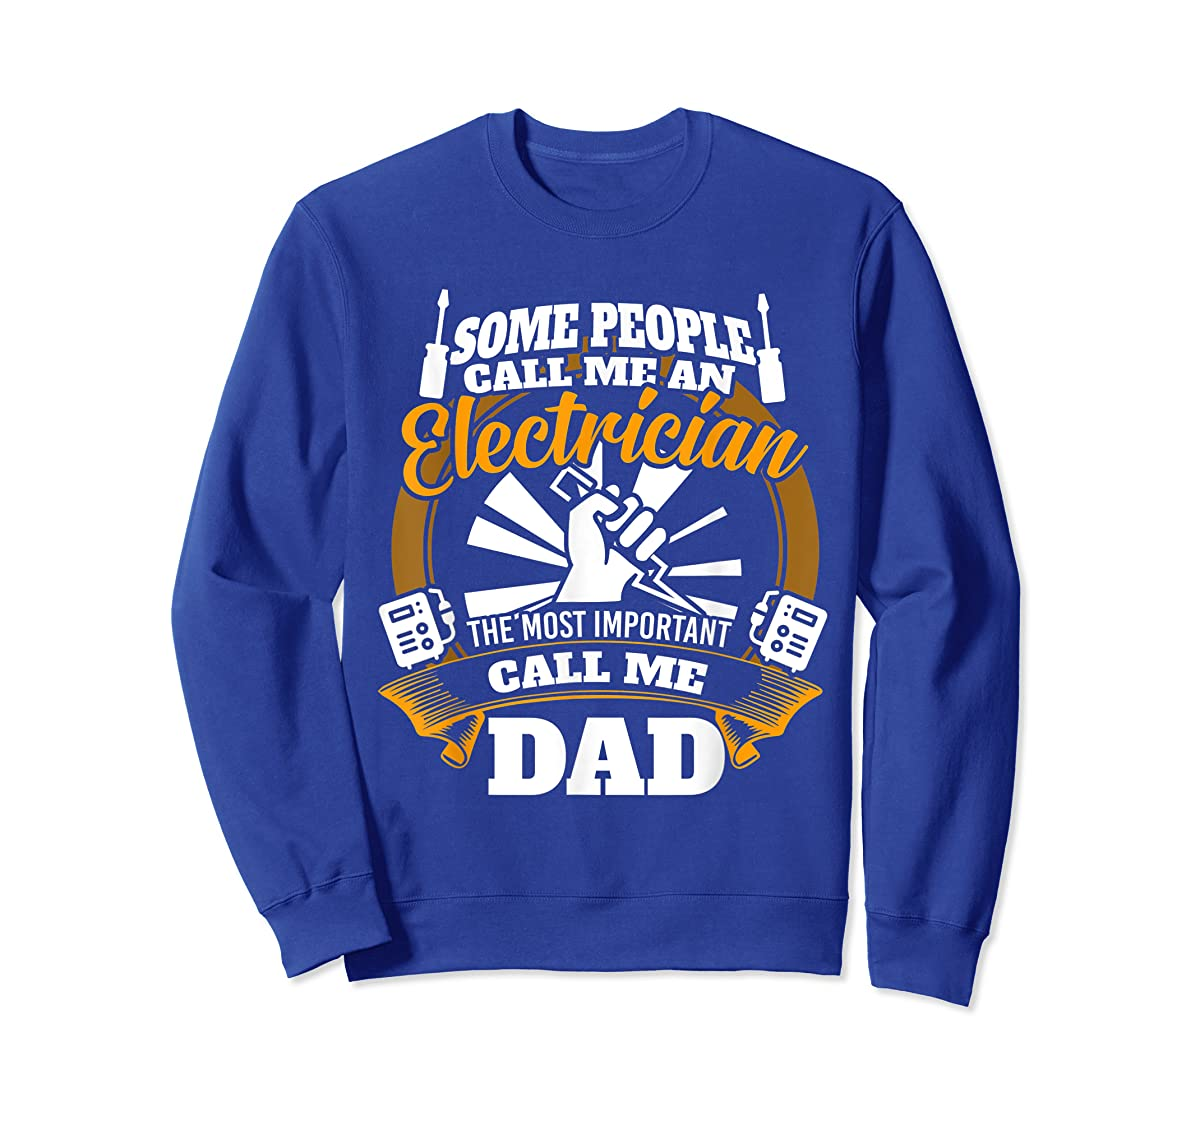 Mens Funny Electrician T-shirt for dad who loves technician gifts-Sweatshirt-Royal